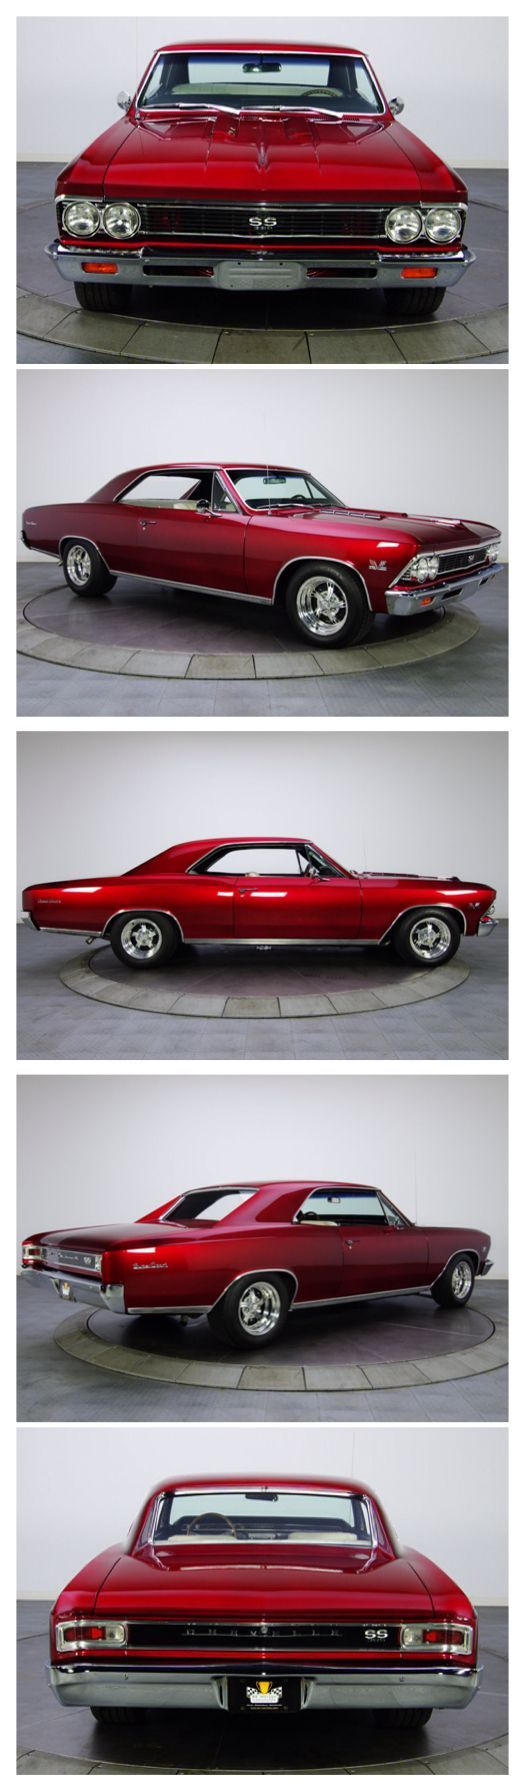 1966 Chevy Chevelle Ssbrought To You By House Of Insurance In 24x Lt1 Wiring Harness Psi Standalone Ls Wirng Lsx Swap Ls1 Ls2 Ls3 Ls7 Lsa Ls9